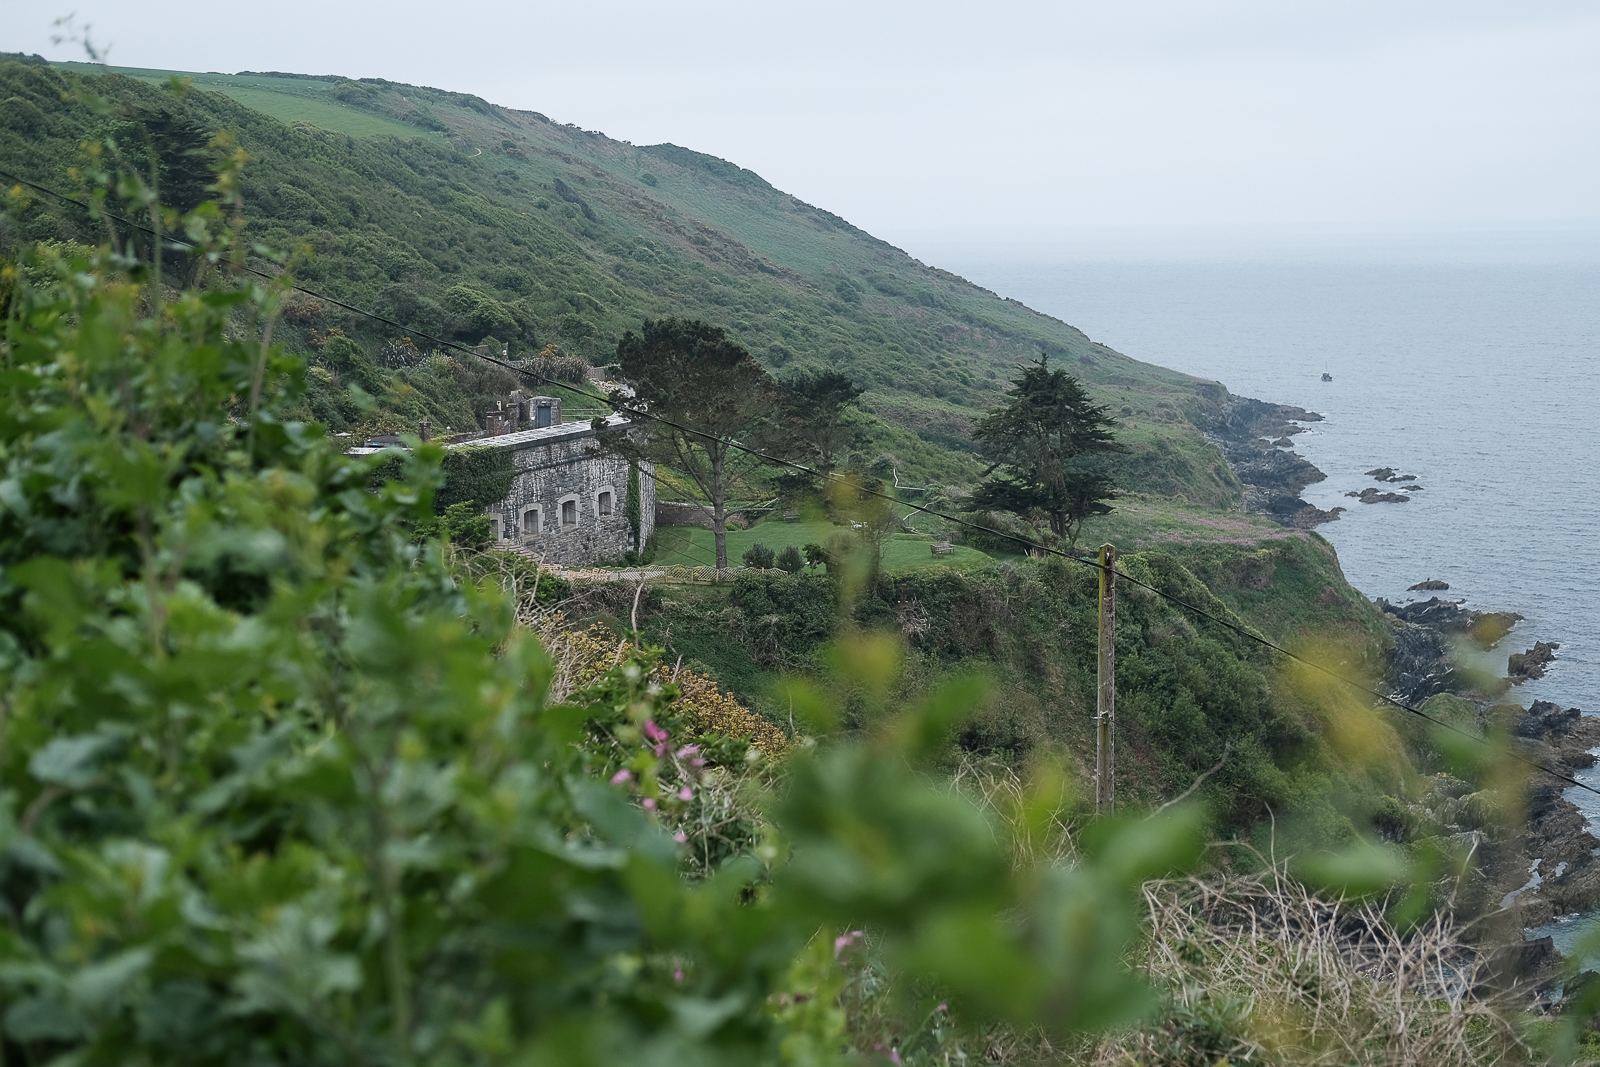 A view of the stunning Polhawn Fort